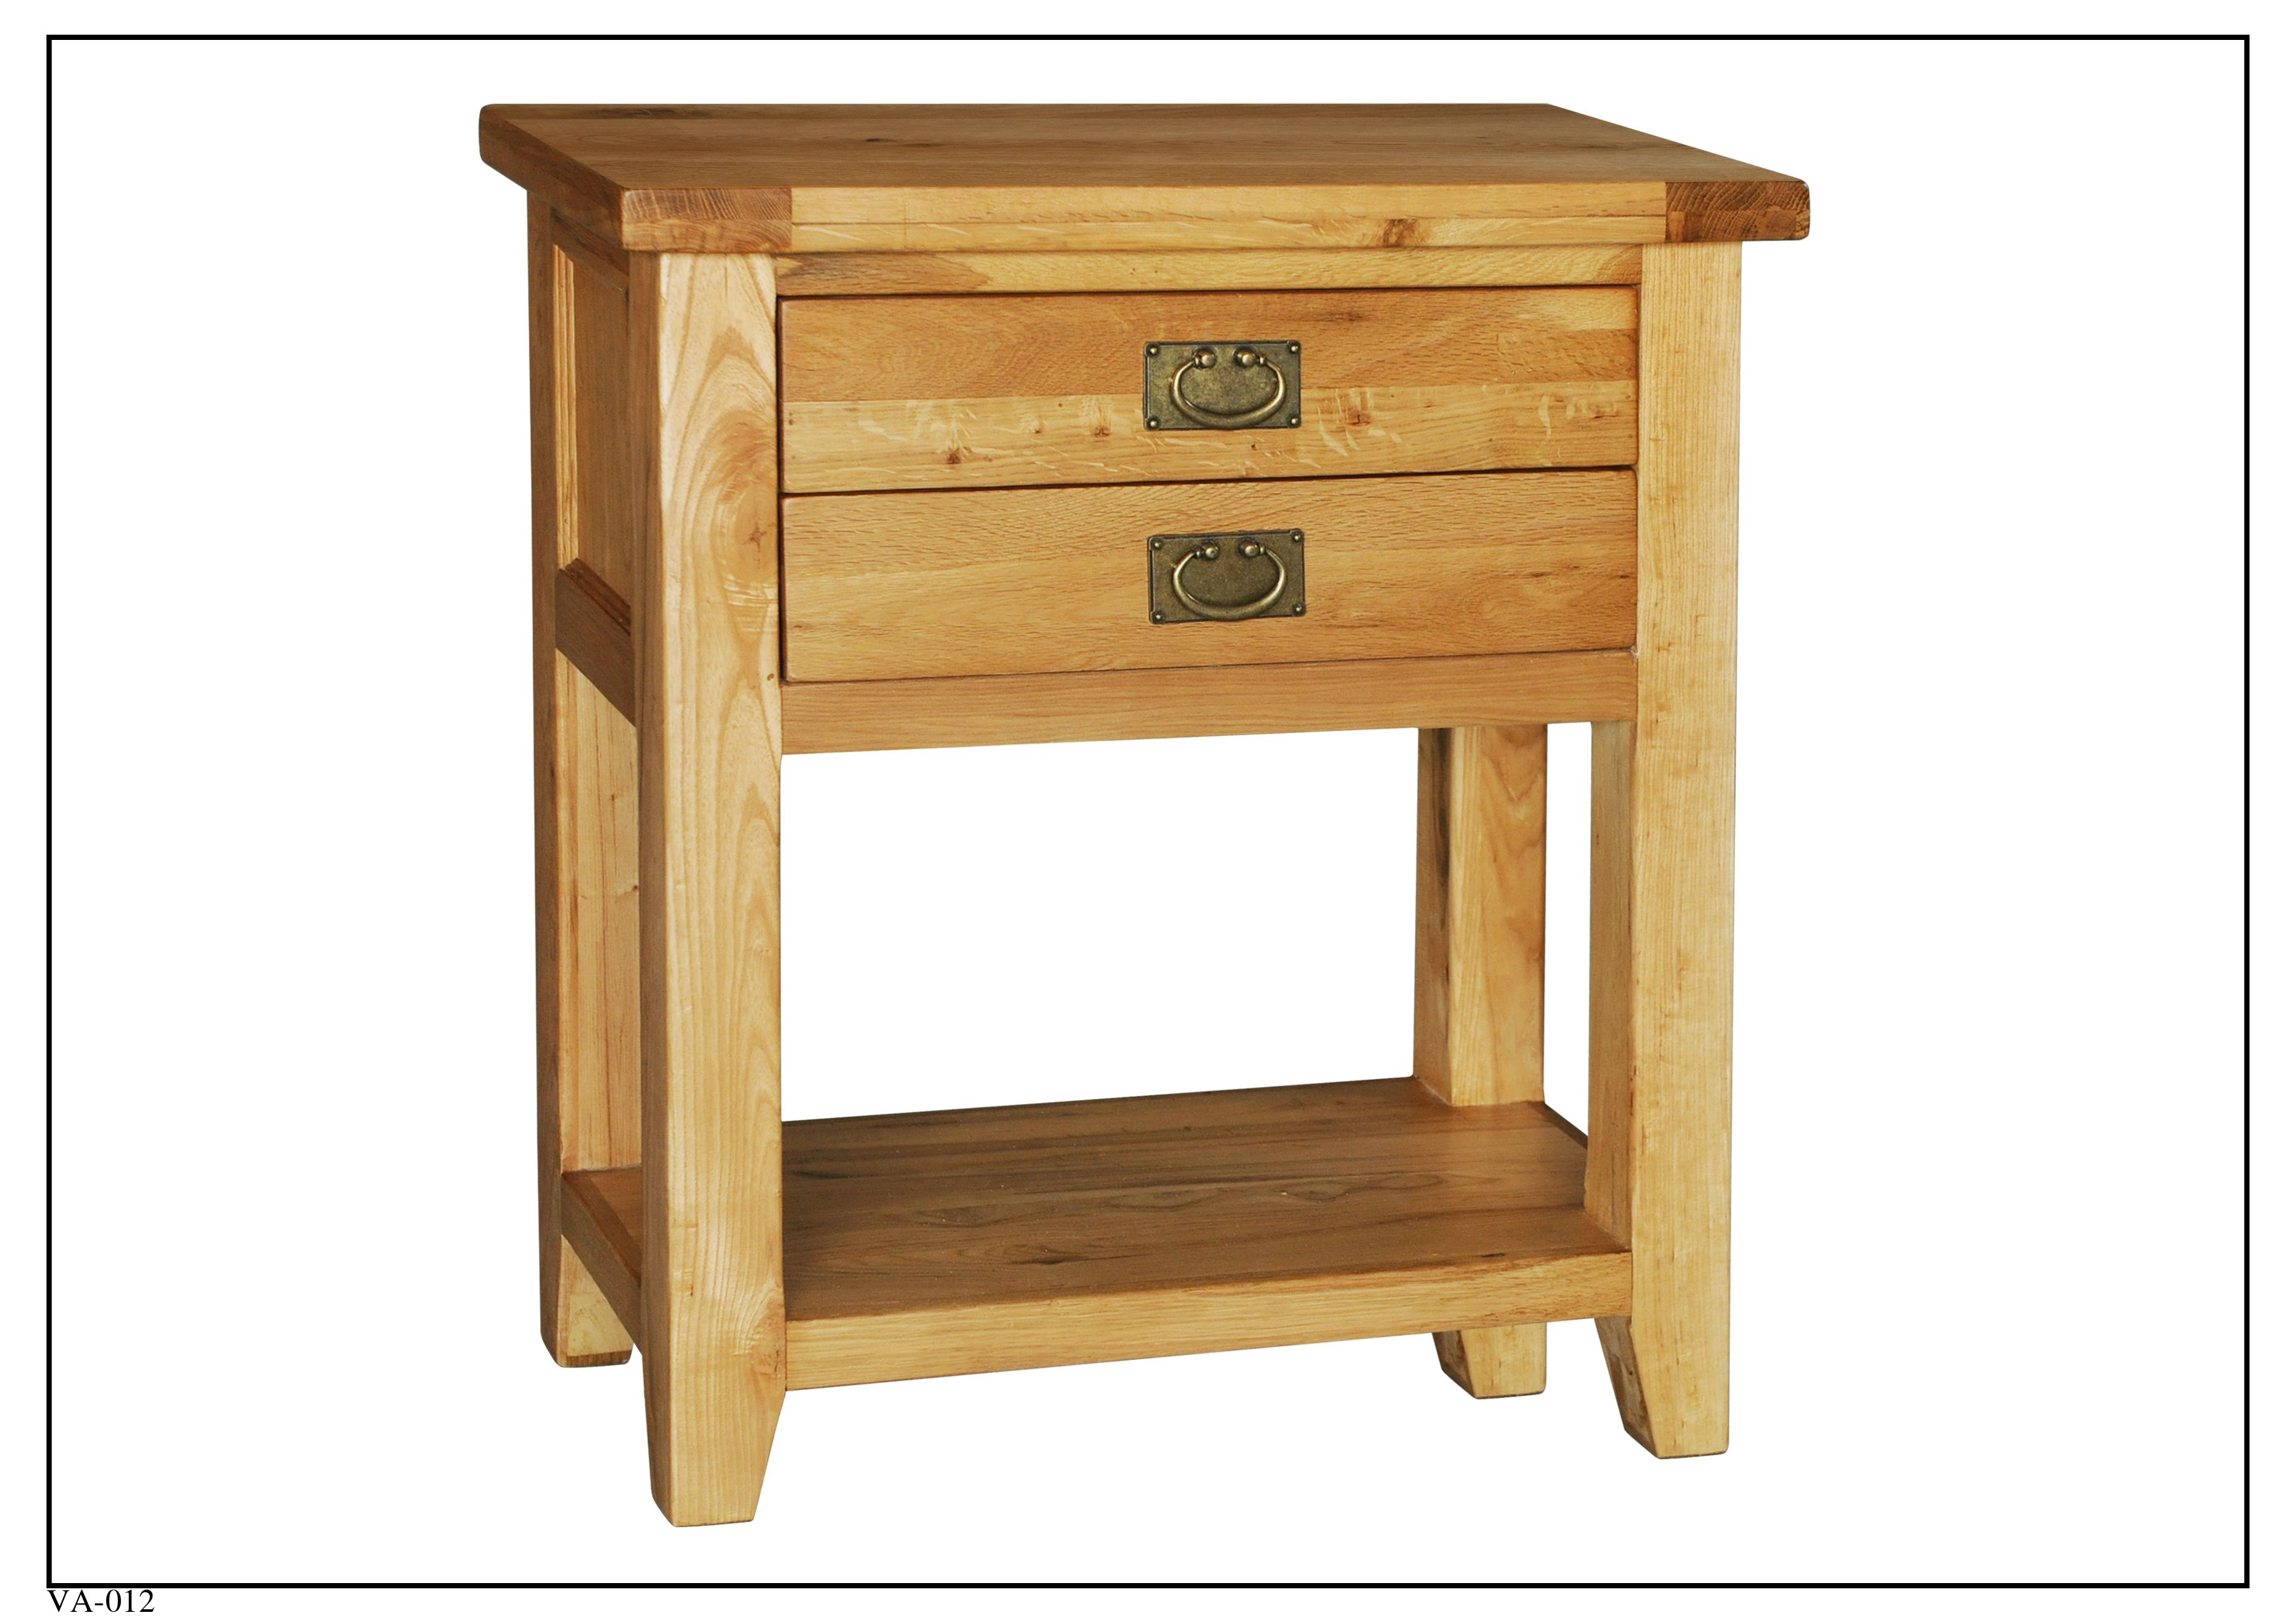 VA012 Small Console Table 750mm x 370mm x 860mm High Vancouver